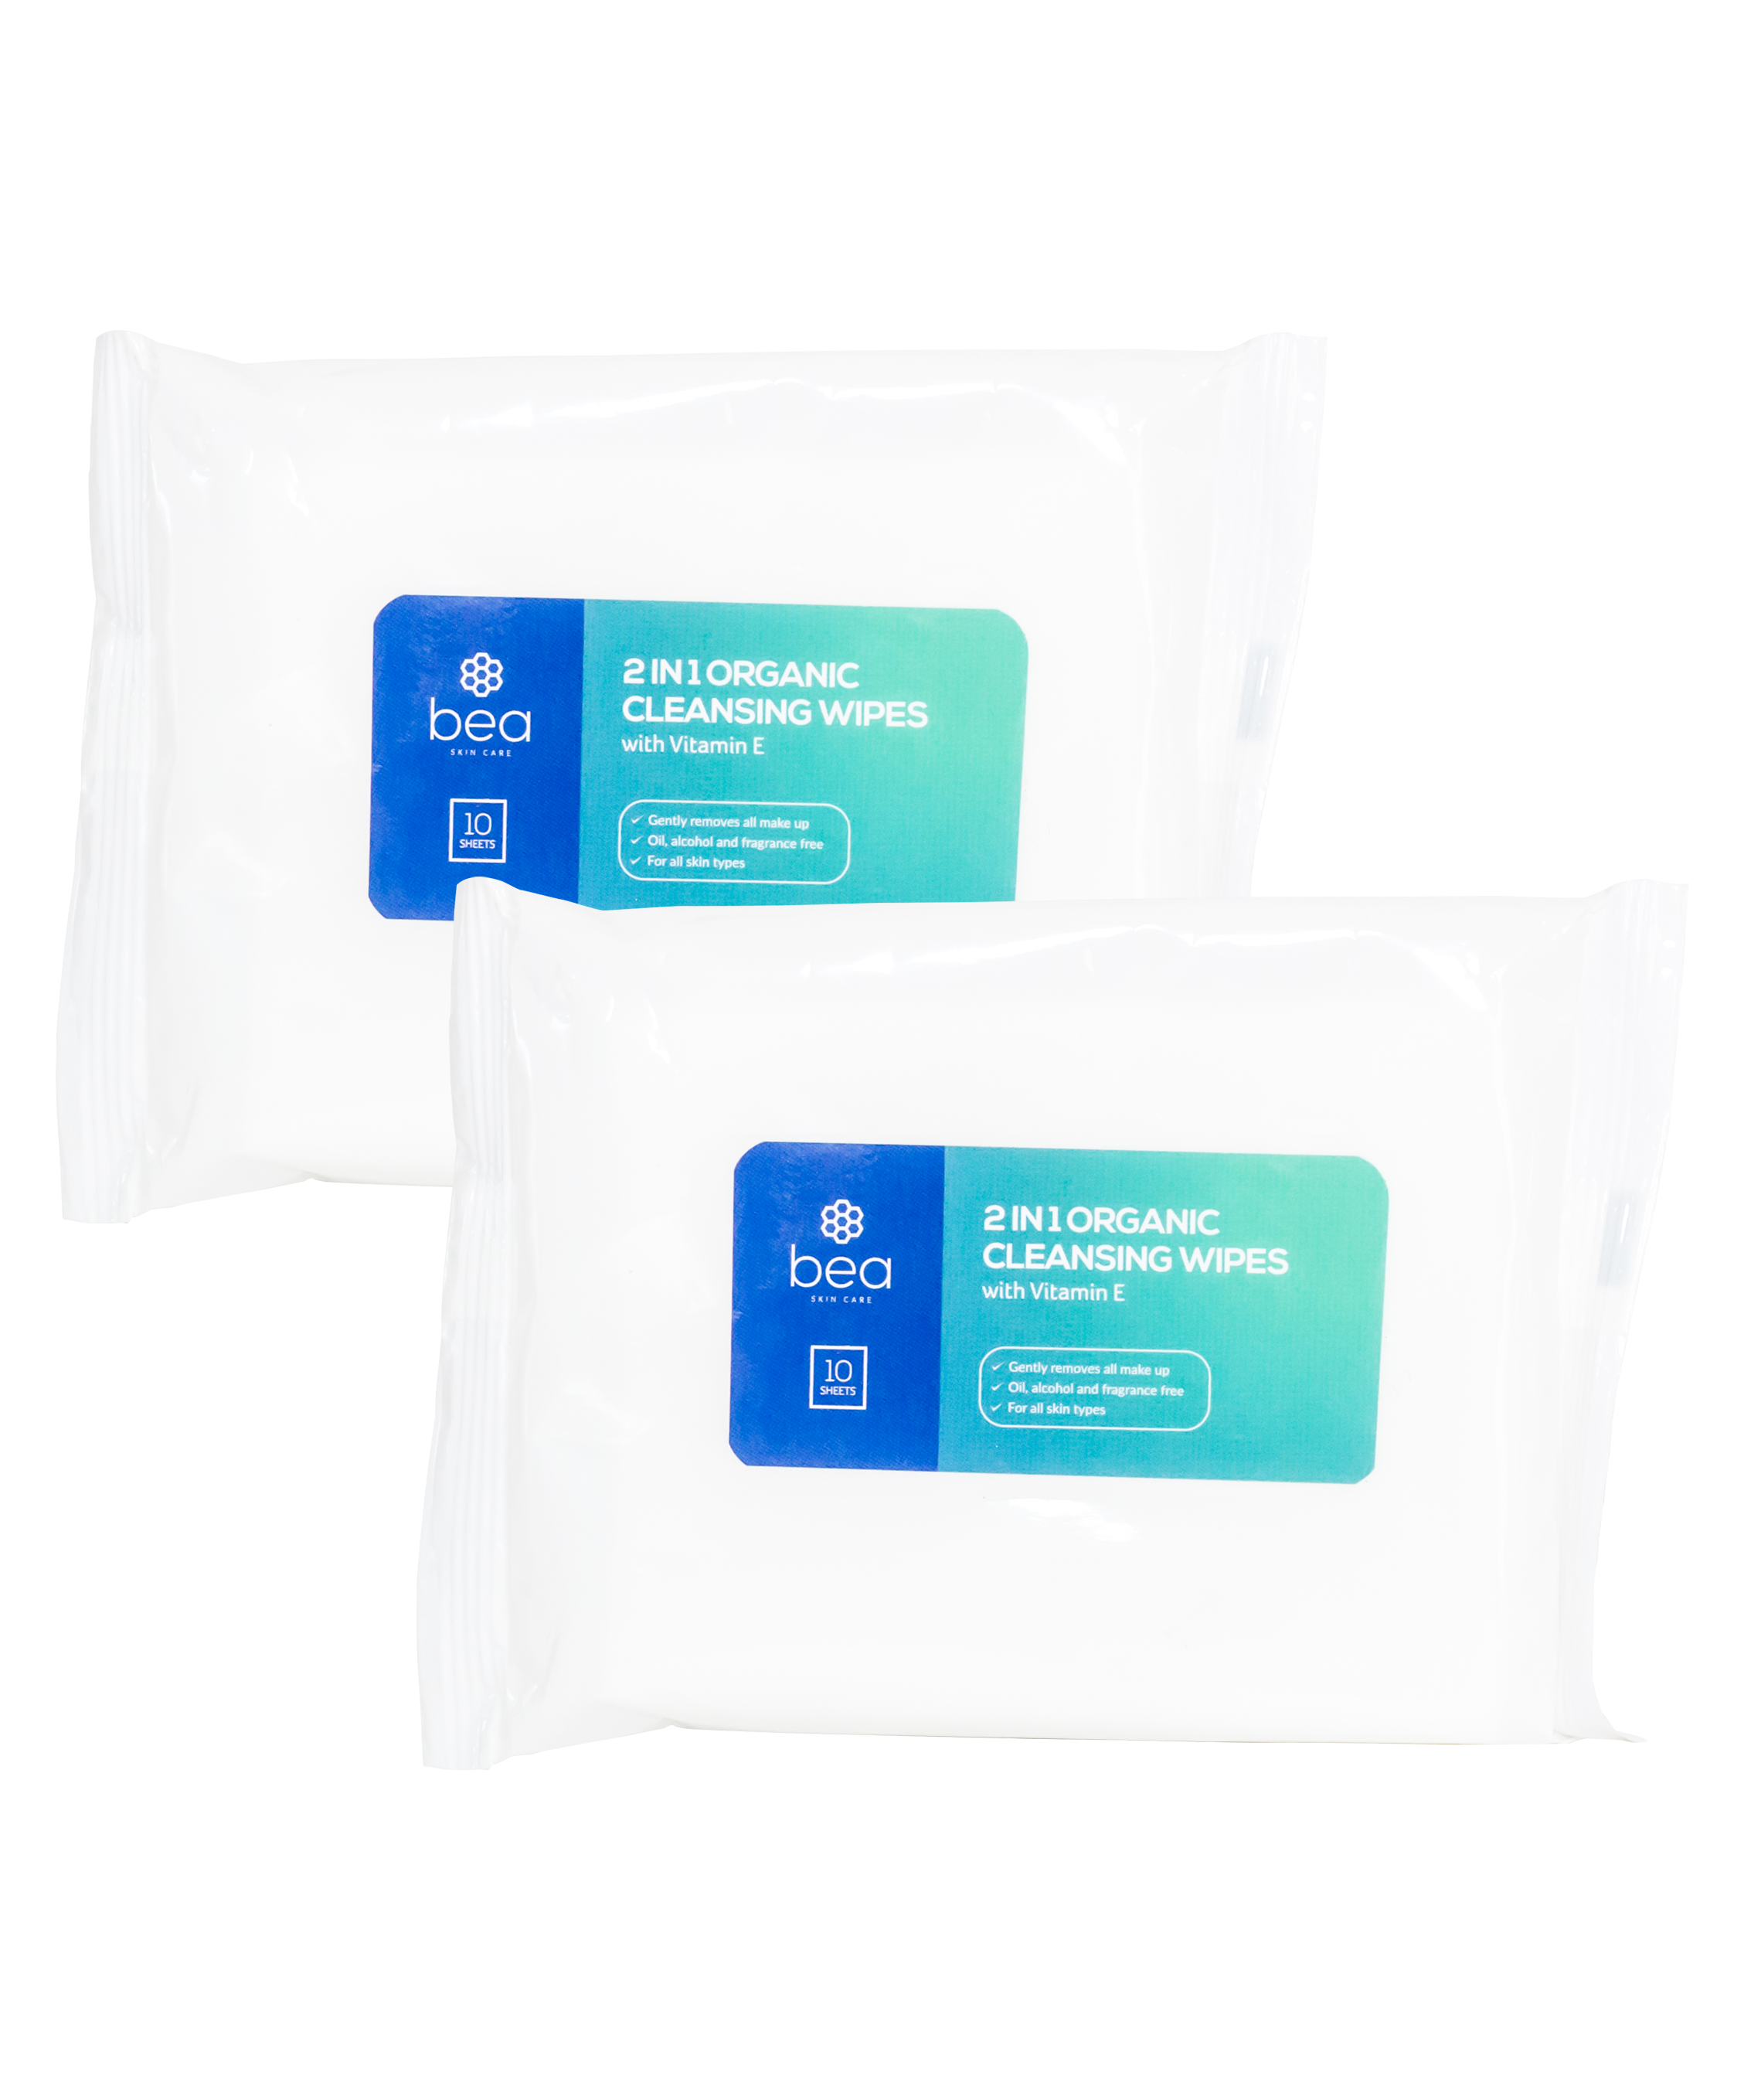 2 in 1 Organic Cleansing Wipes Wipes bea Skin Care